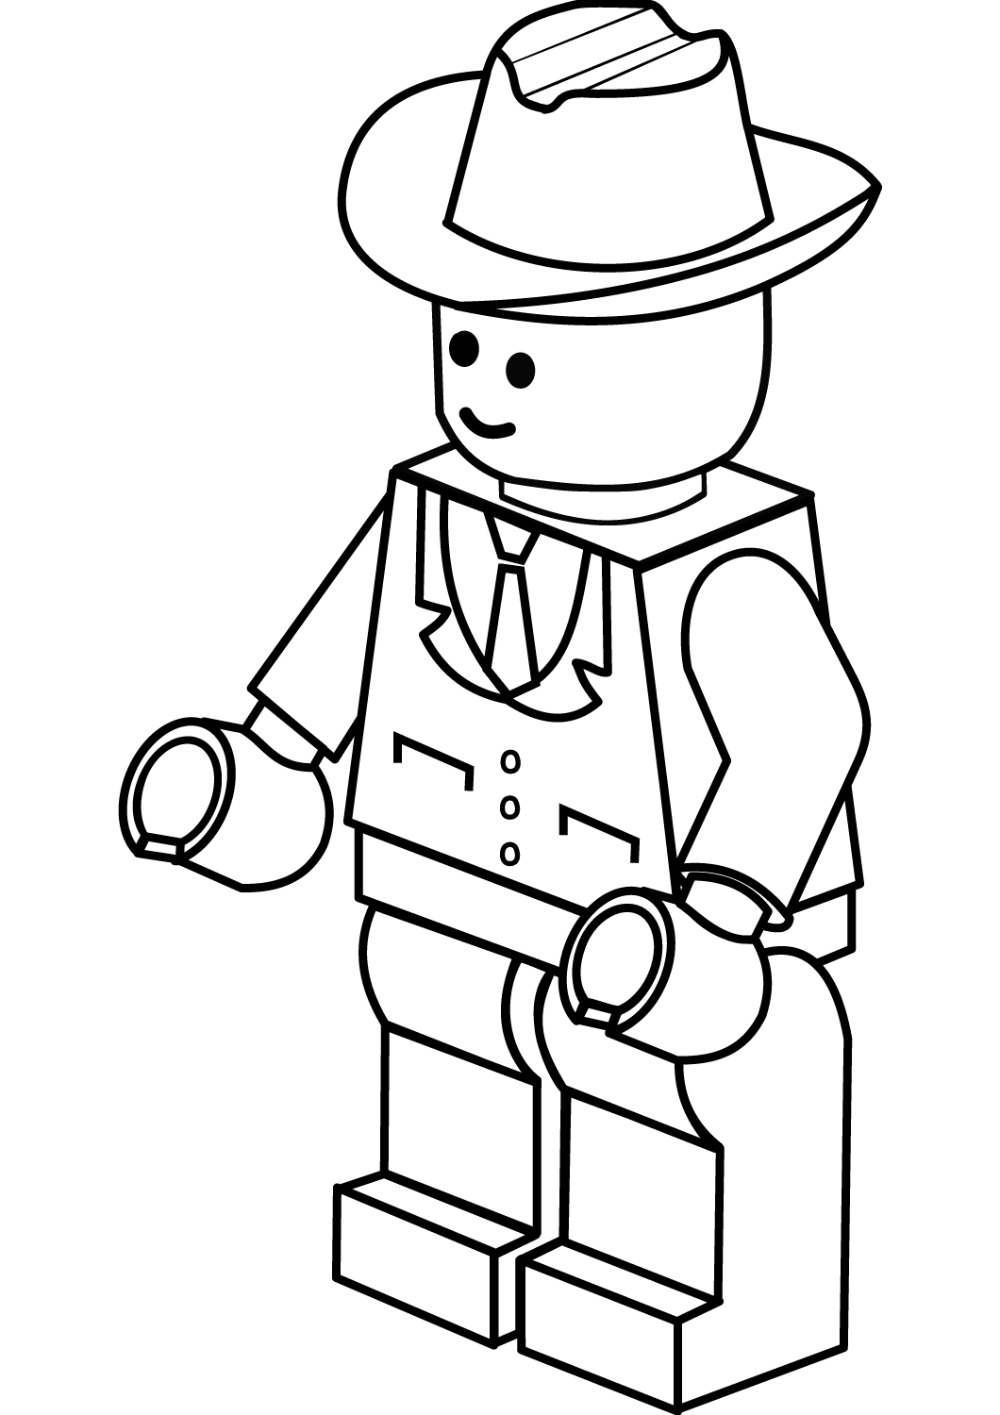 lego colouring in pages lego man coloring page for students and teacher pages in colouring lego